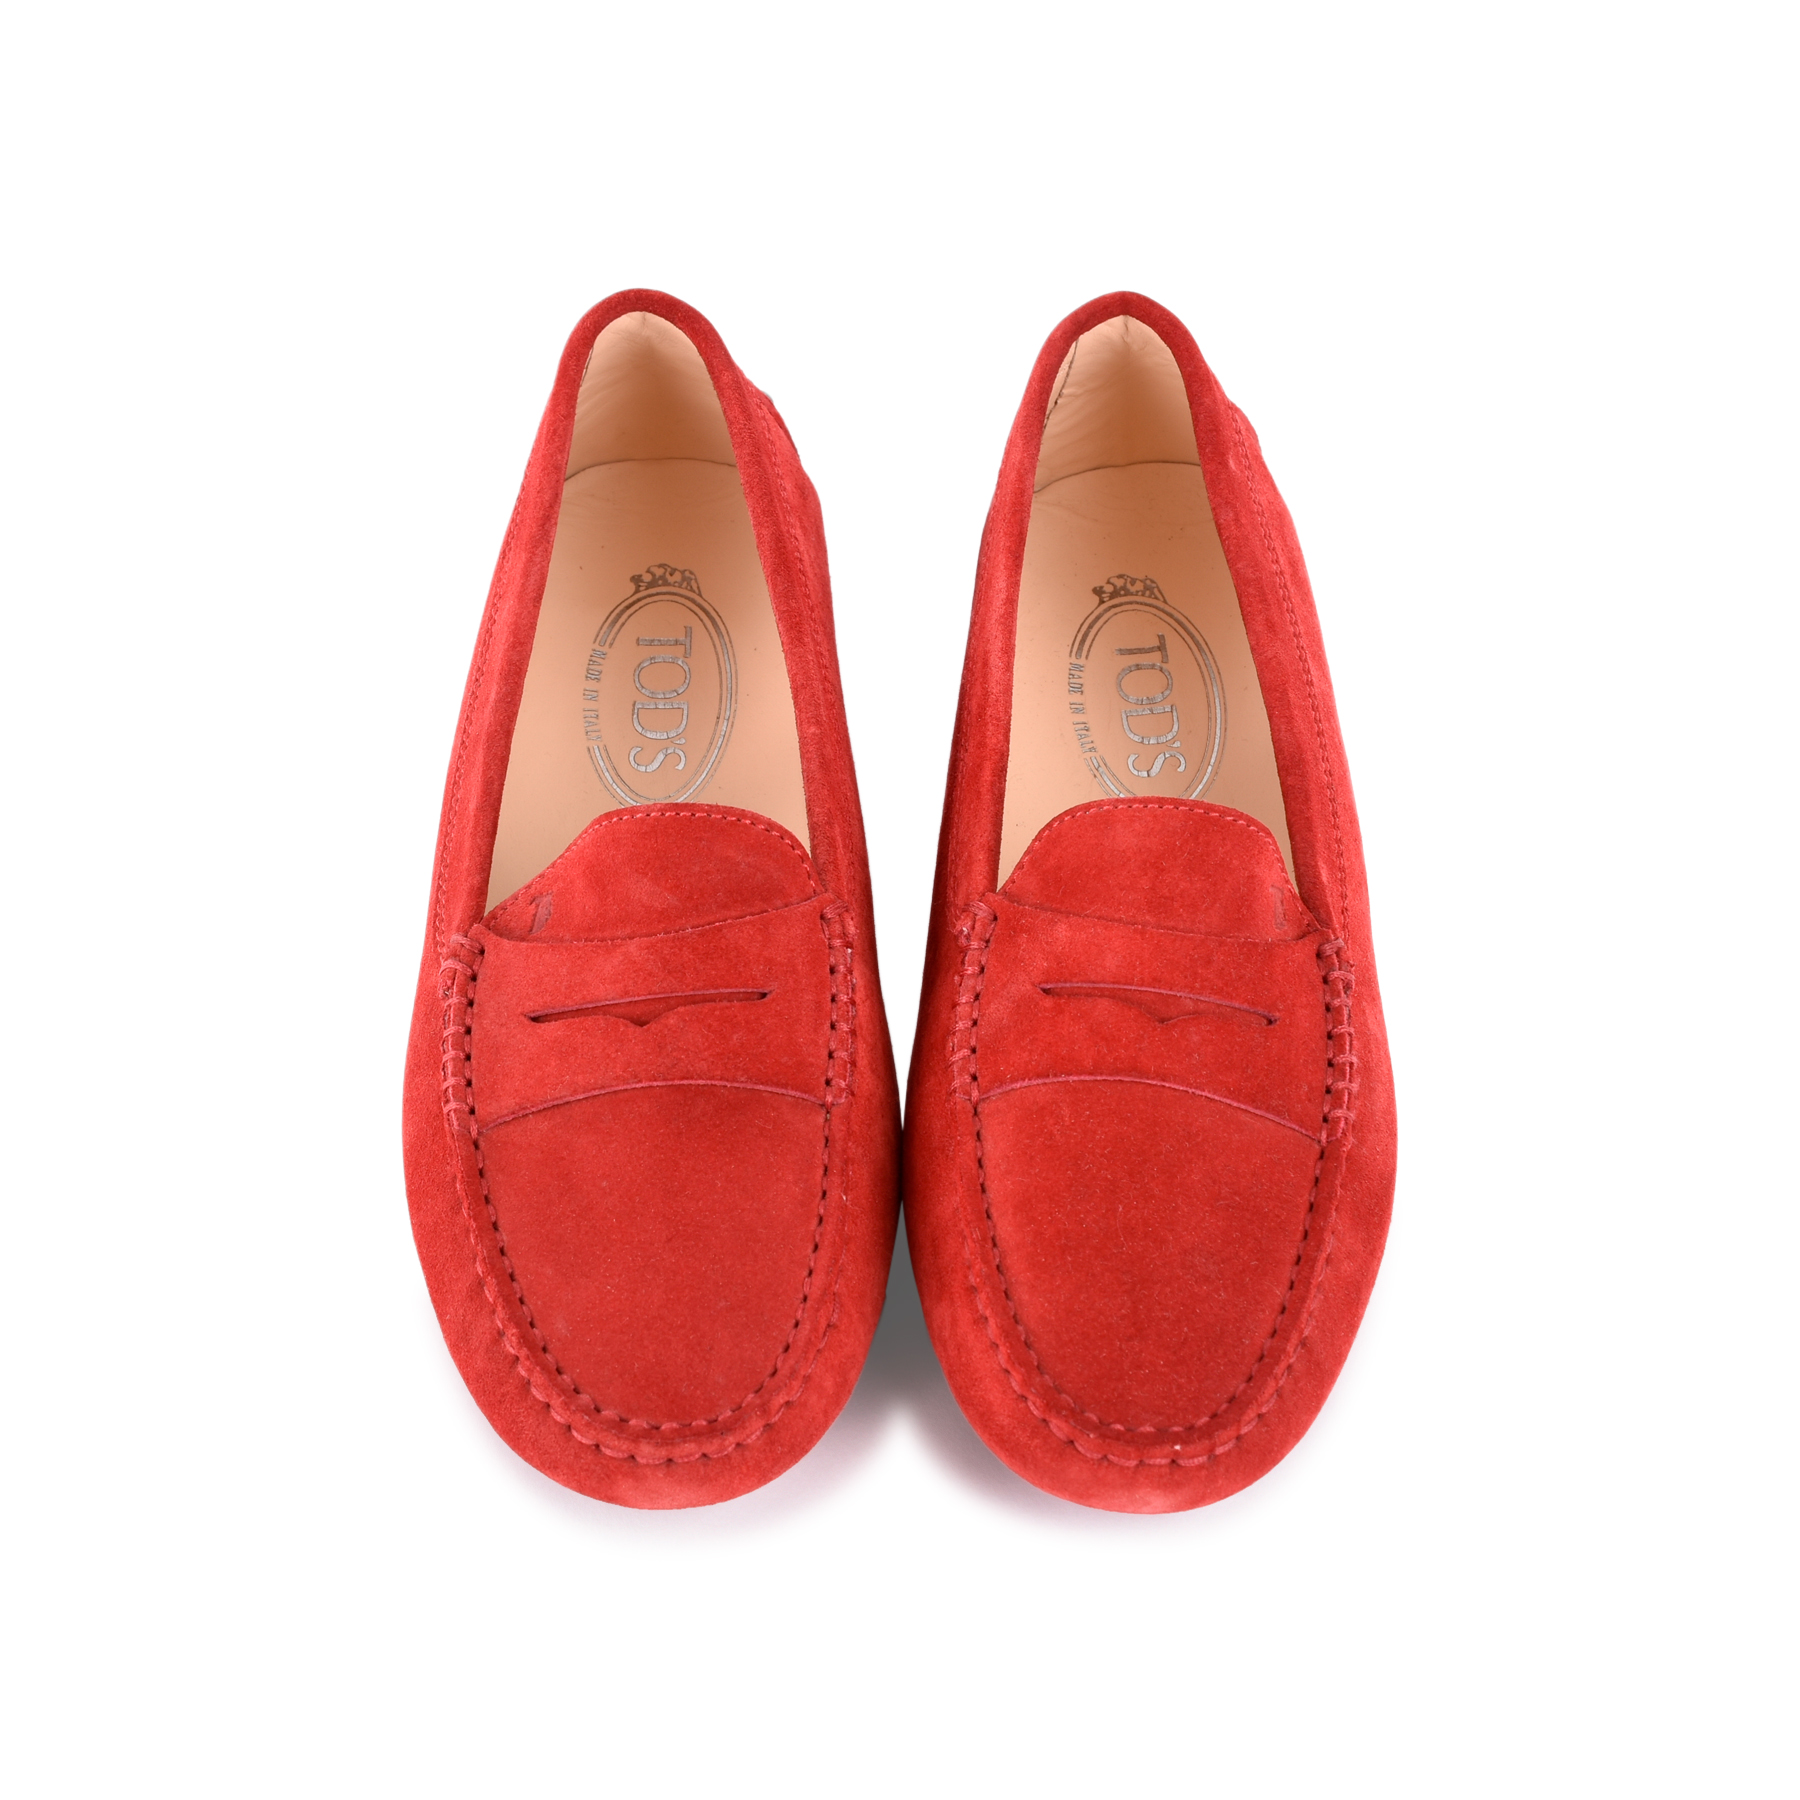 0f748aaf949 Authentic Second Hand Tod s Gommino Suede Loafers (PSS-469-00020 ...